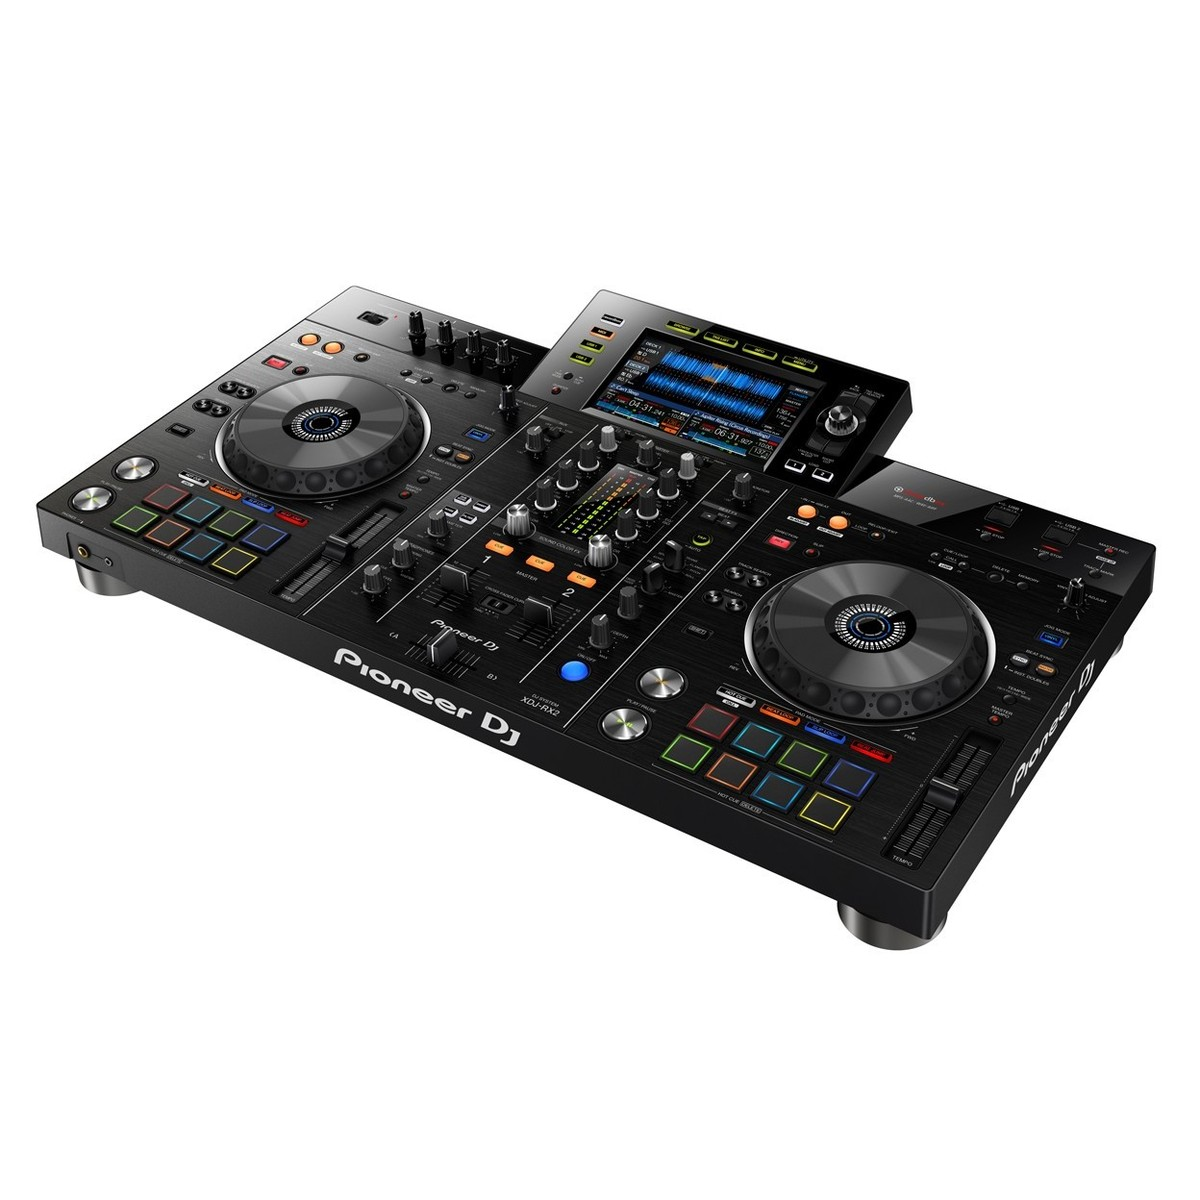 pioneer dj xdj rx2 all in one dj controller at gear4music. Black Bedroom Furniture Sets. Home Design Ideas